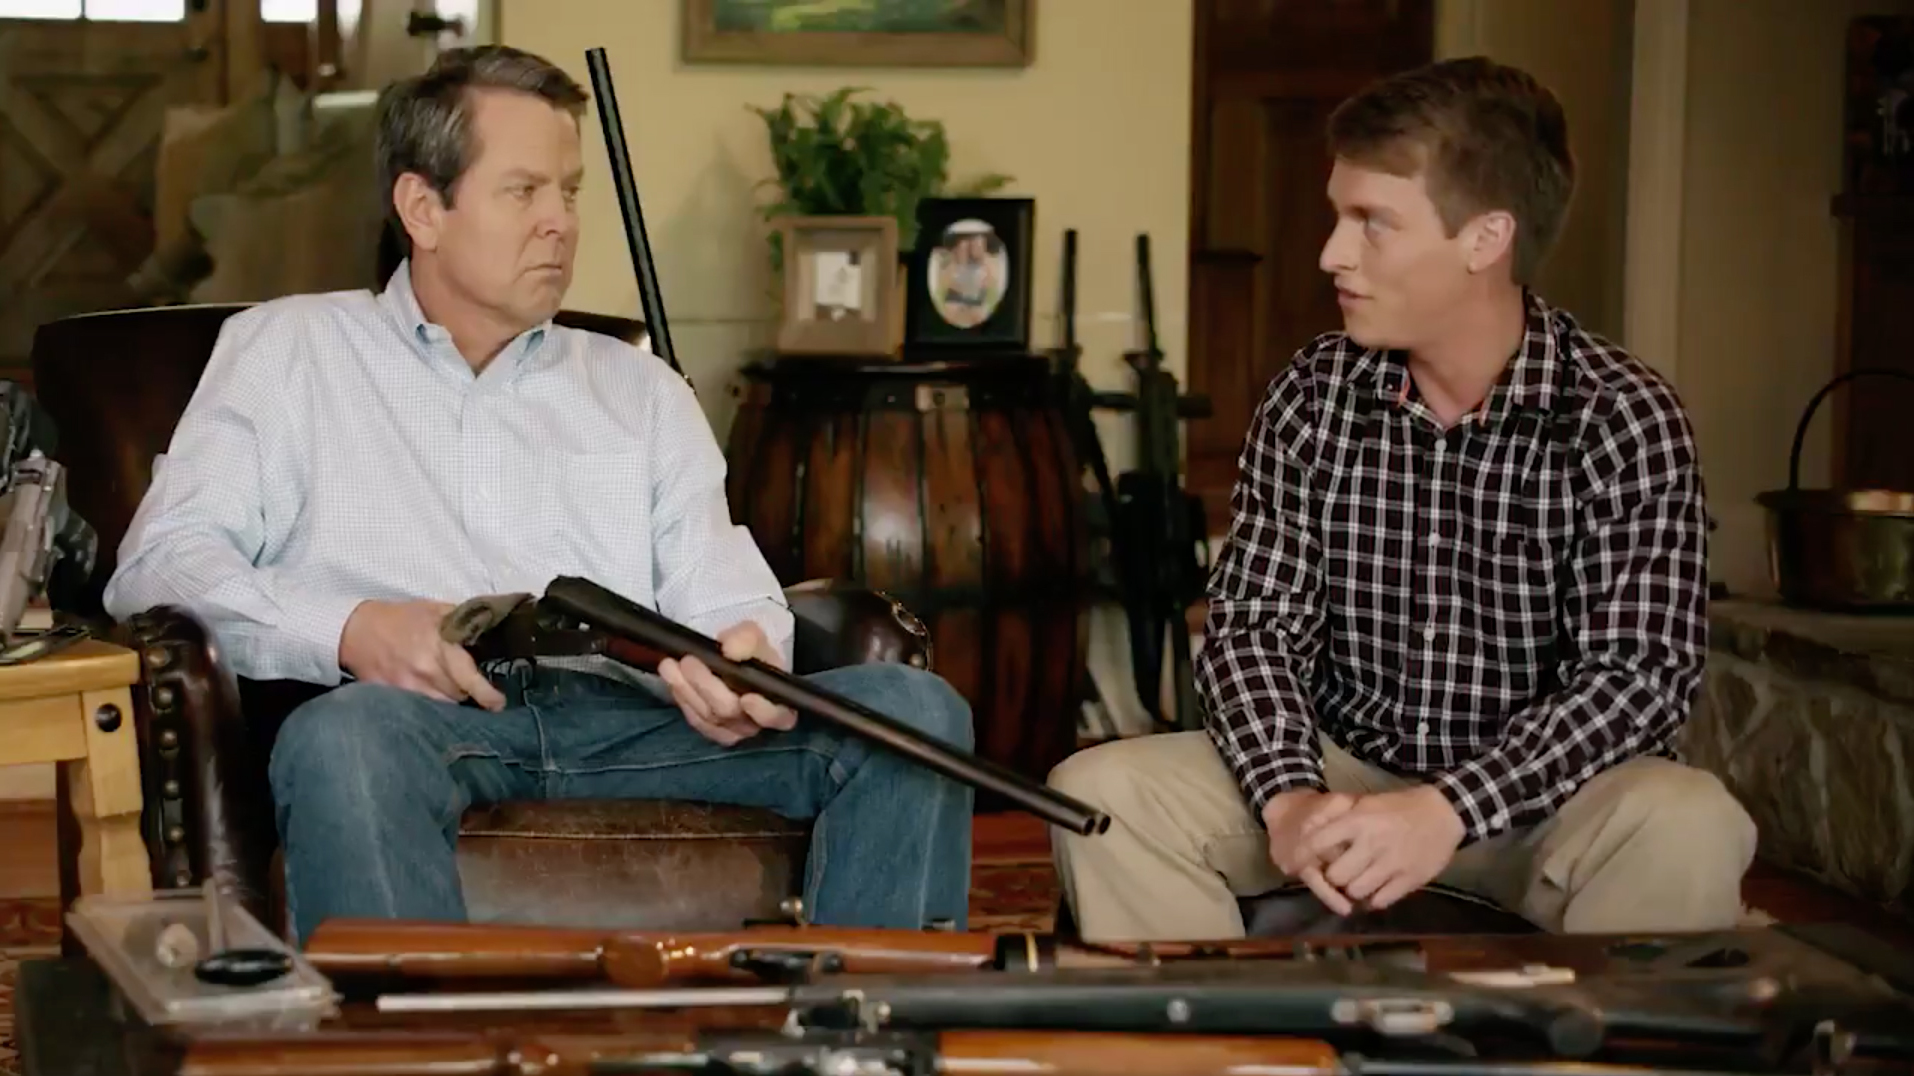 A Campaign Ad In Georgia Showing Brian Kemp Pointing A Gun At A Young Man Has Spurred Backlash Npr